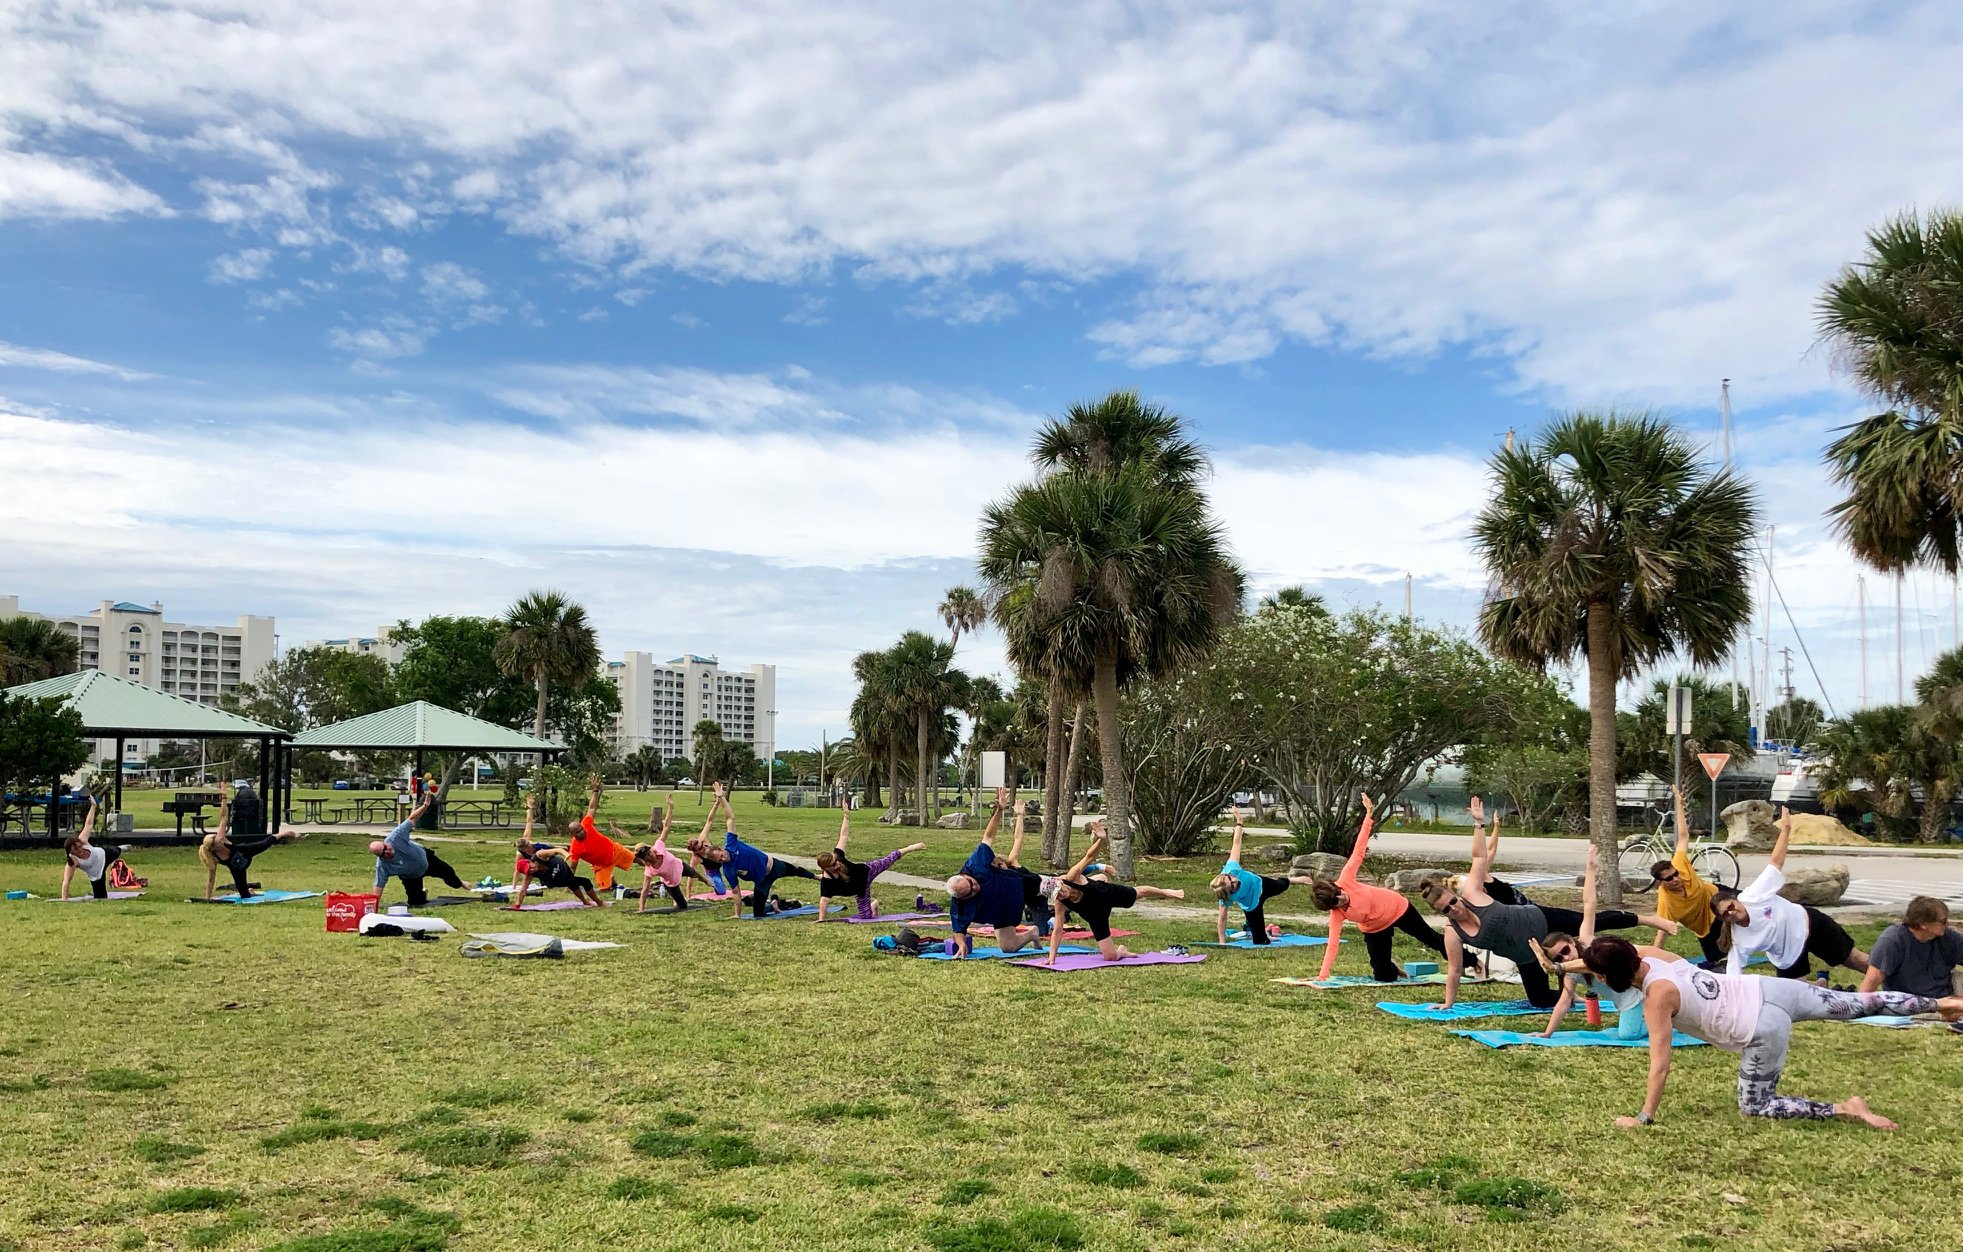 Titusville Yoga in the Park Sundays 9AM Sponsored by The Titusville Yoga Loft at Sand Point Park 101 N Washington Ave, Titusville, Florida 9.jpg